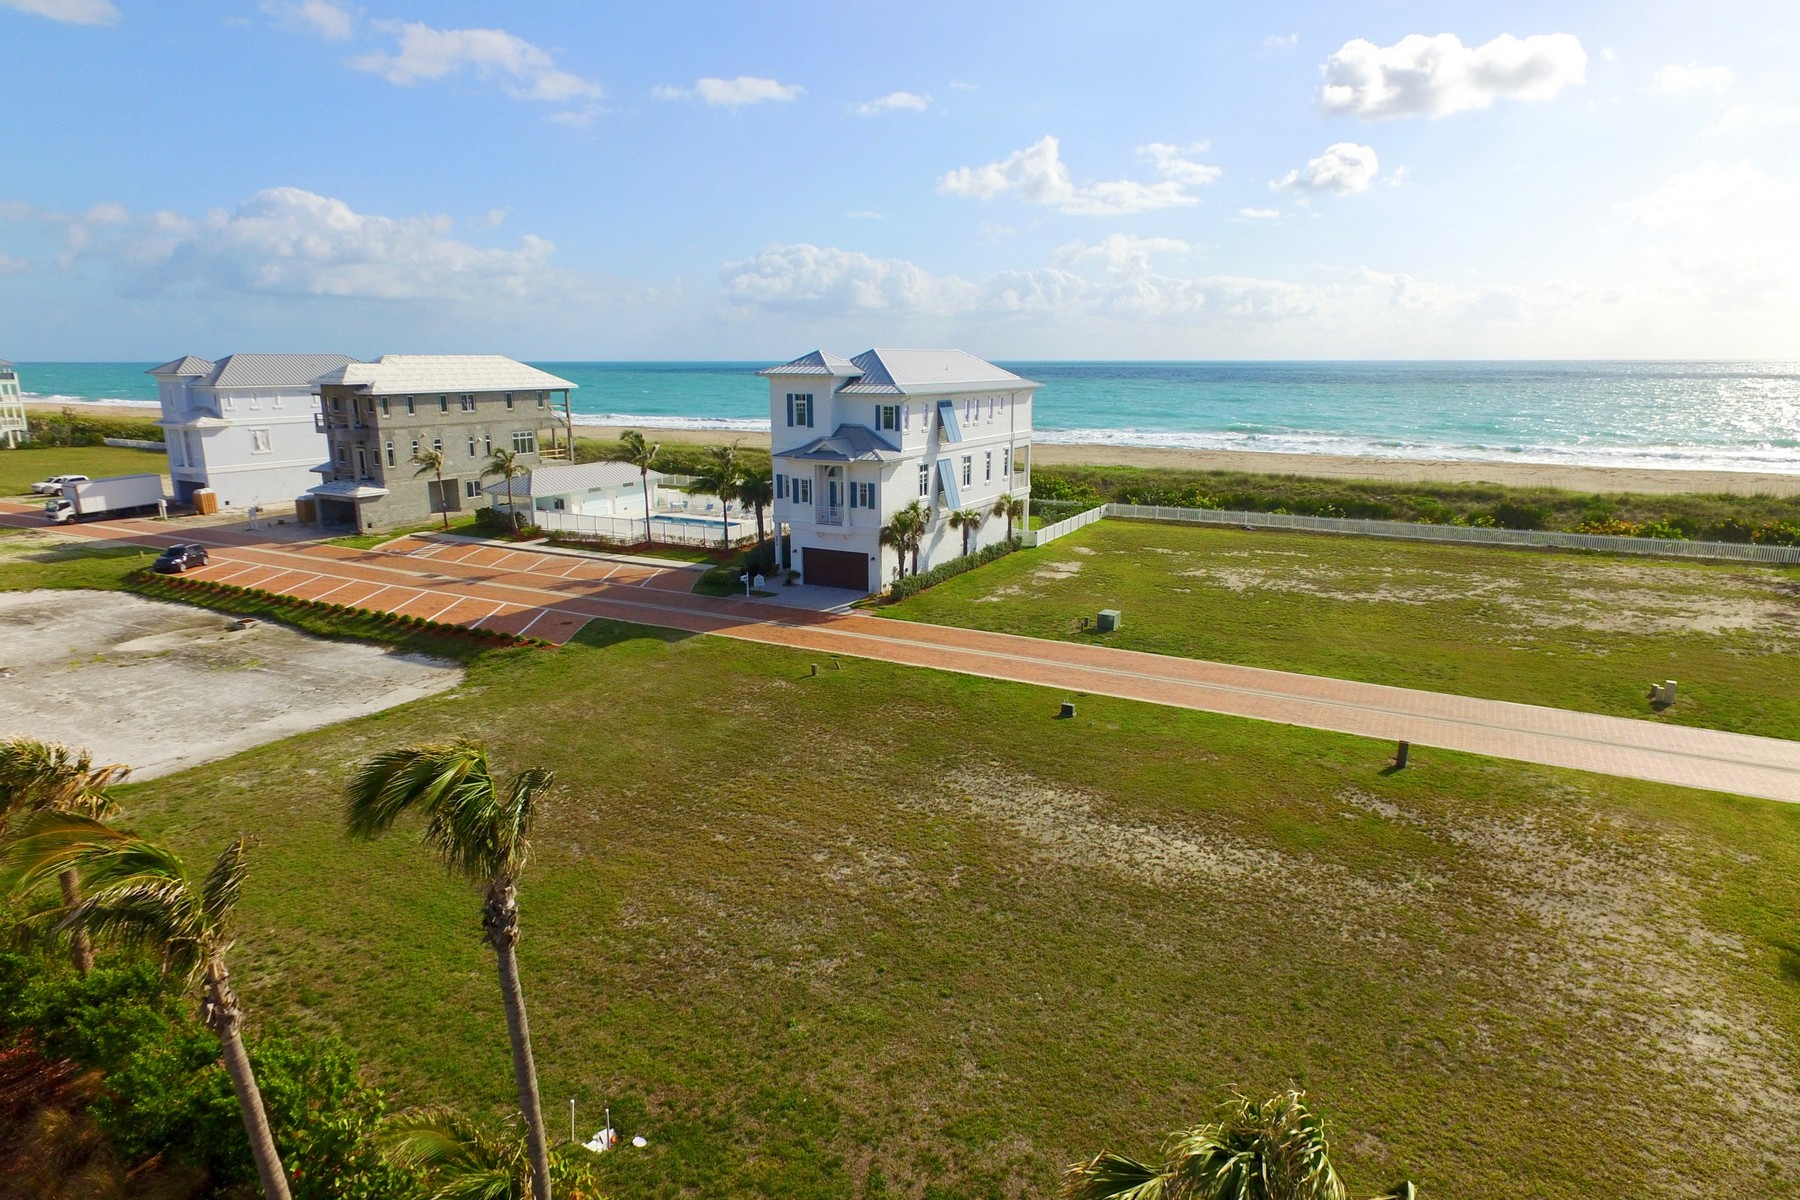 Luxury homesite with 360 degree Ocean and Intracoastal Views 4905 Watersong Way Hutchinson Island, Florida 34949 Vereinigte Staaten